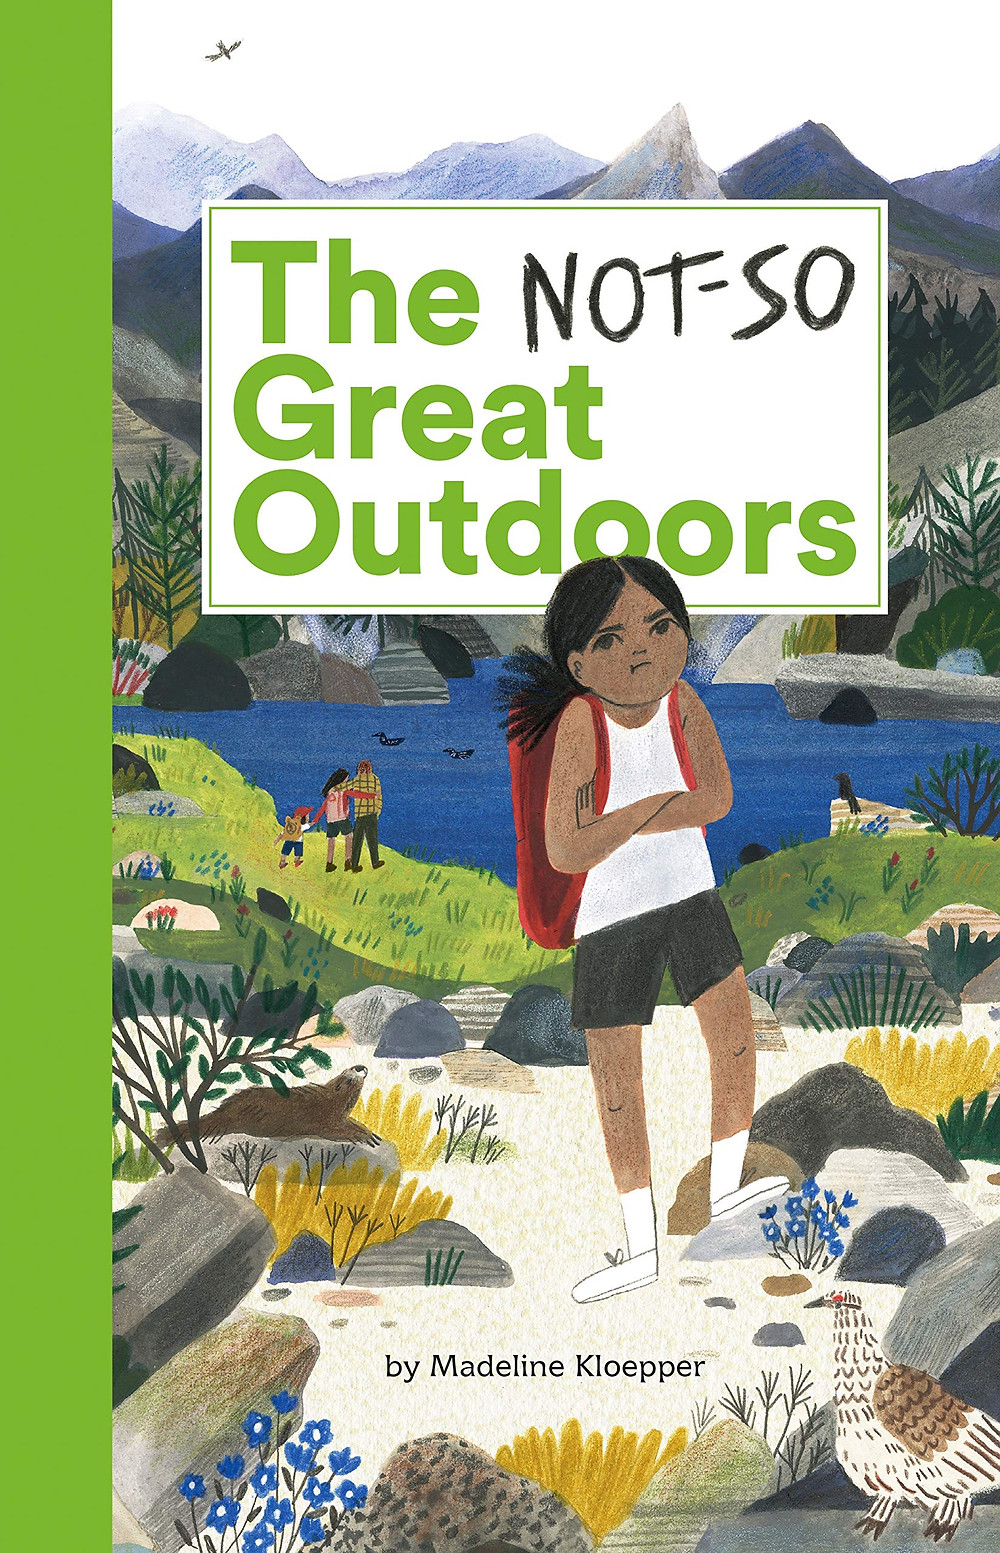 The cover of The Not-So Great Outdoors with a dark-skinned girl pouting on the shores of a mountain lake with her family in the background